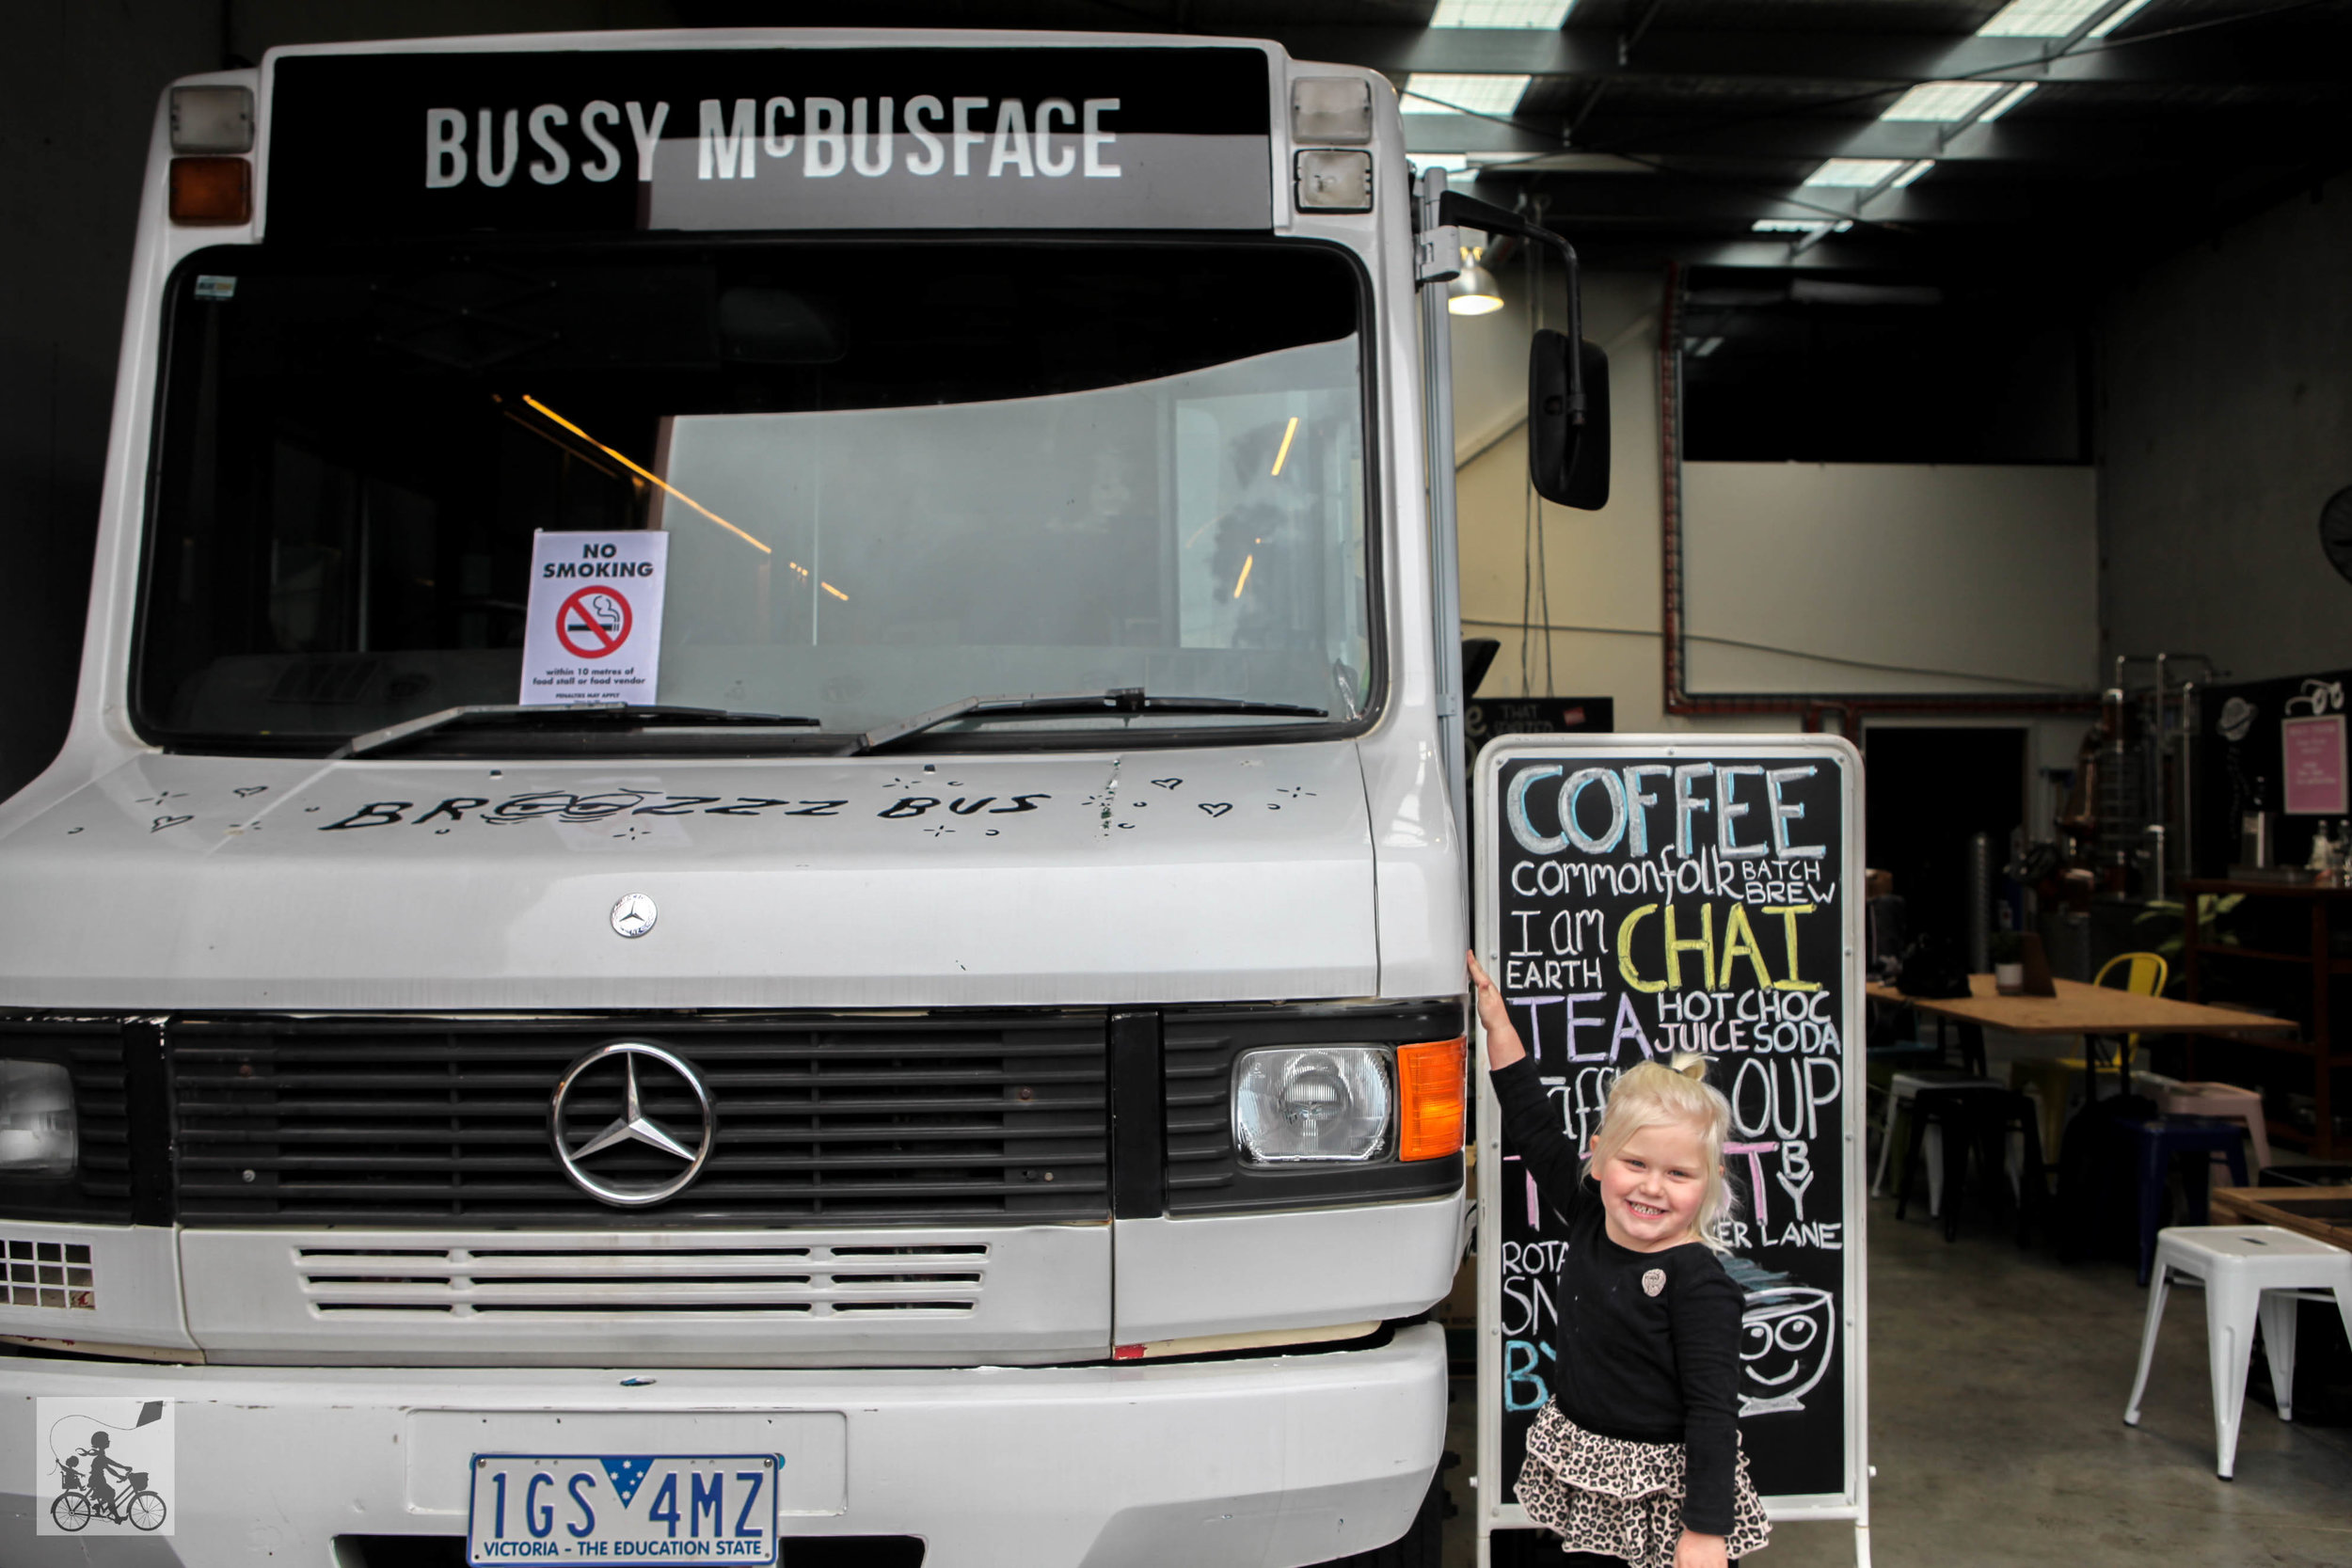 Bussy McBusFace-  Mamma Knows South (40 of 65).jpg